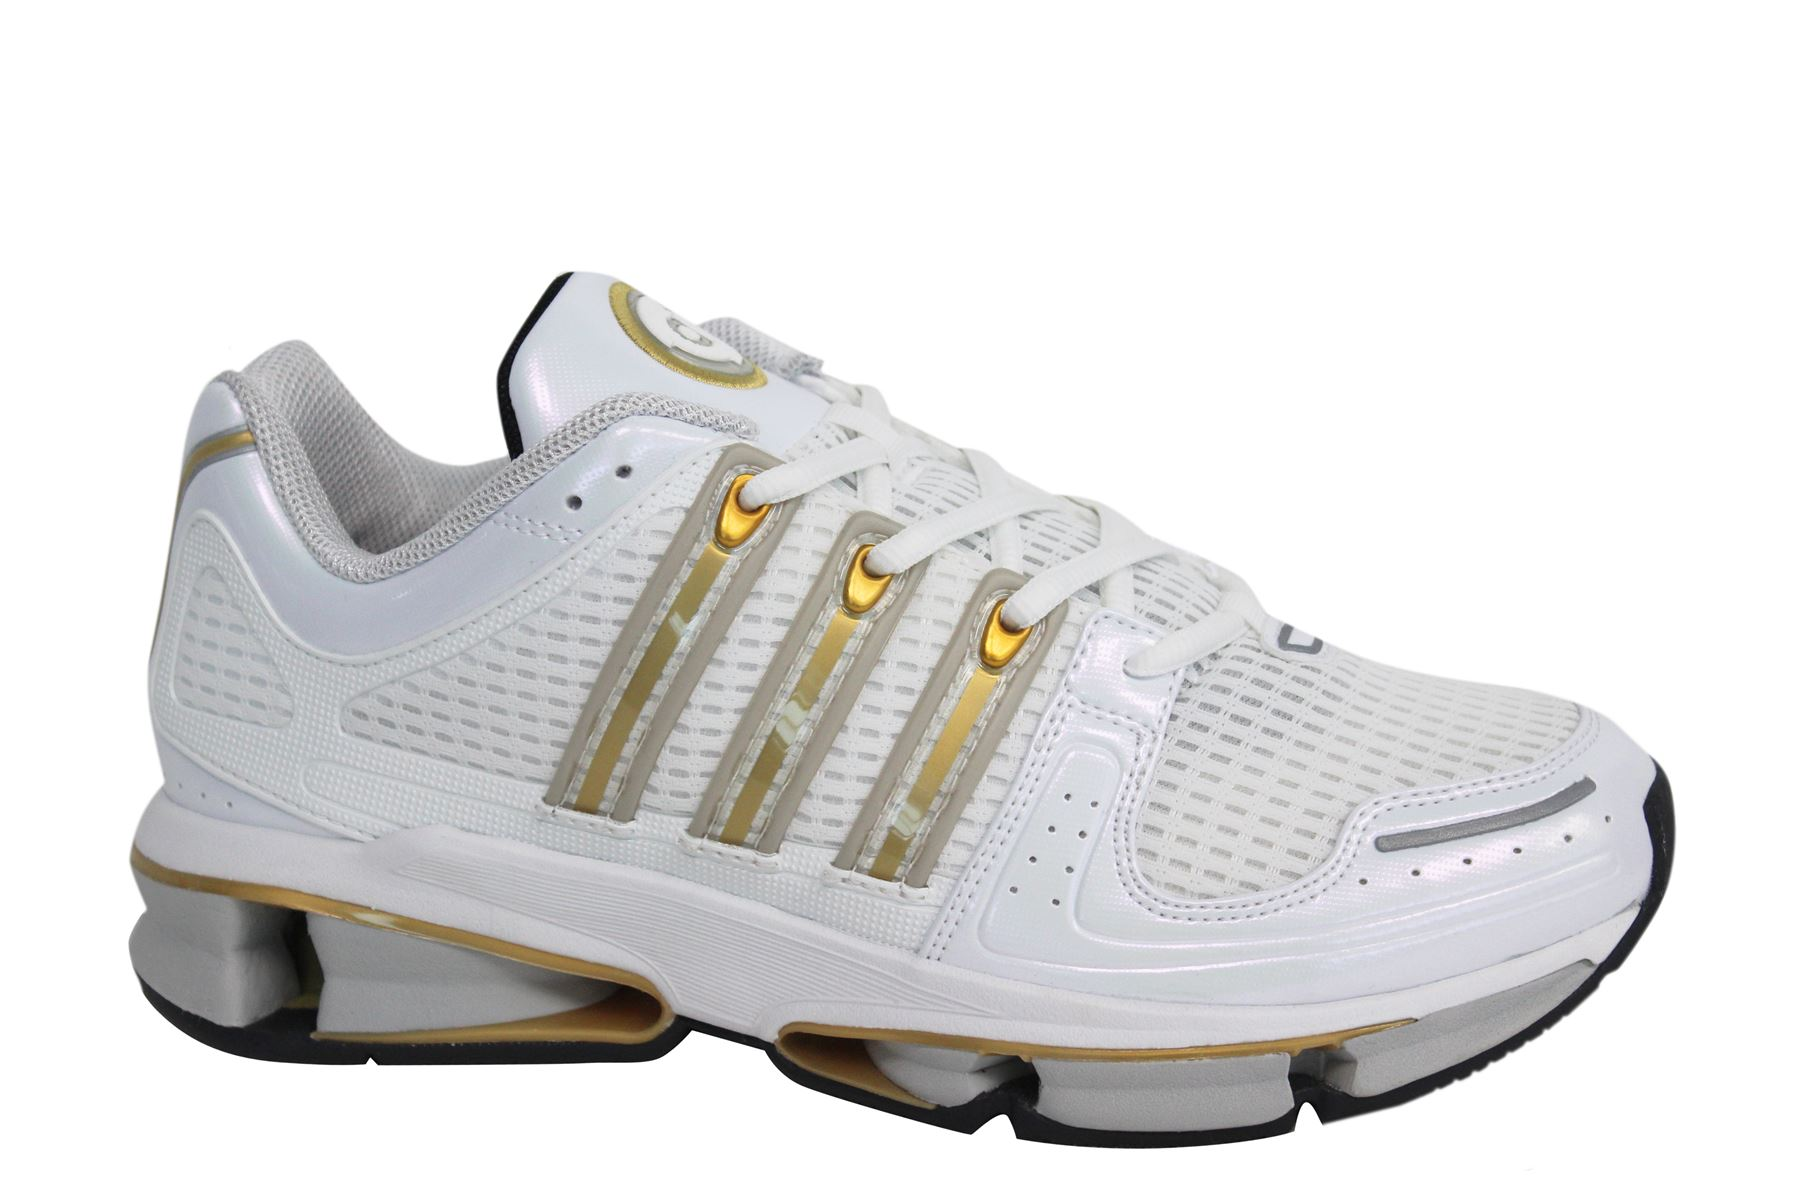 new style a2983 a9dc2 Adidas A3 Twinstrike Lace Up White Gold Synthetic Mens Trainers